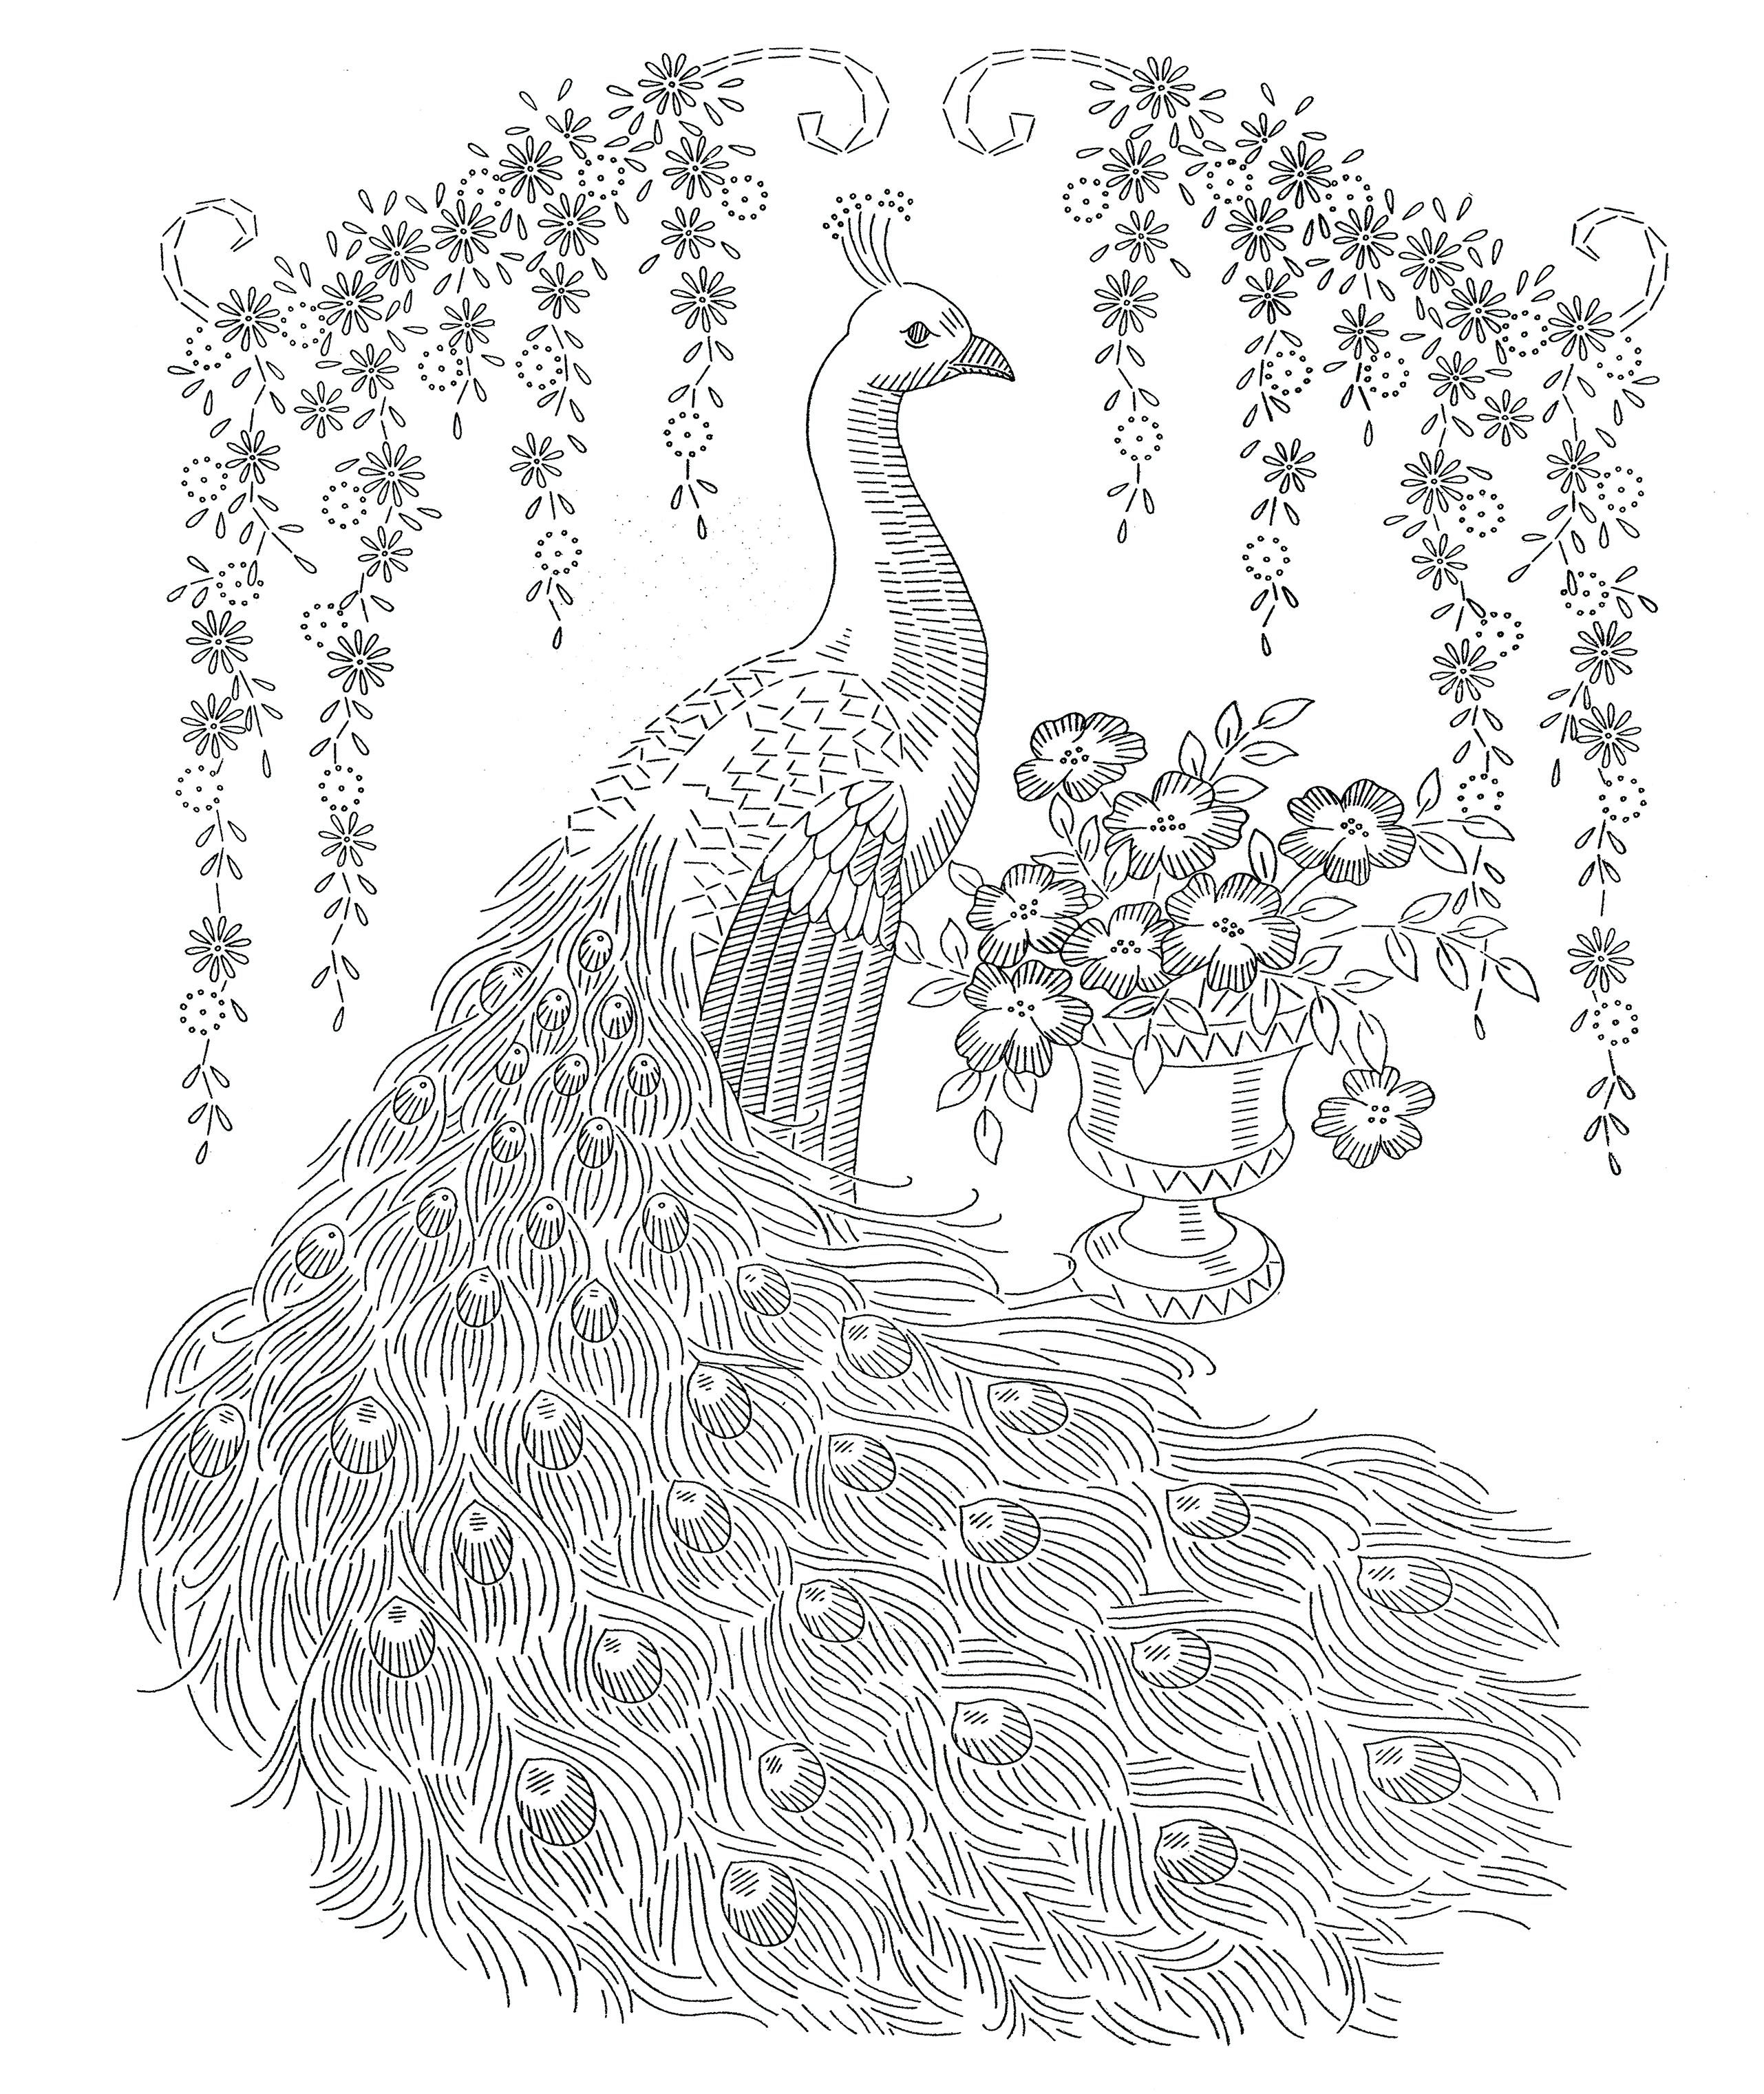 Peacock Embroidery Patterns Peacock Color Pages Fiestaprintco